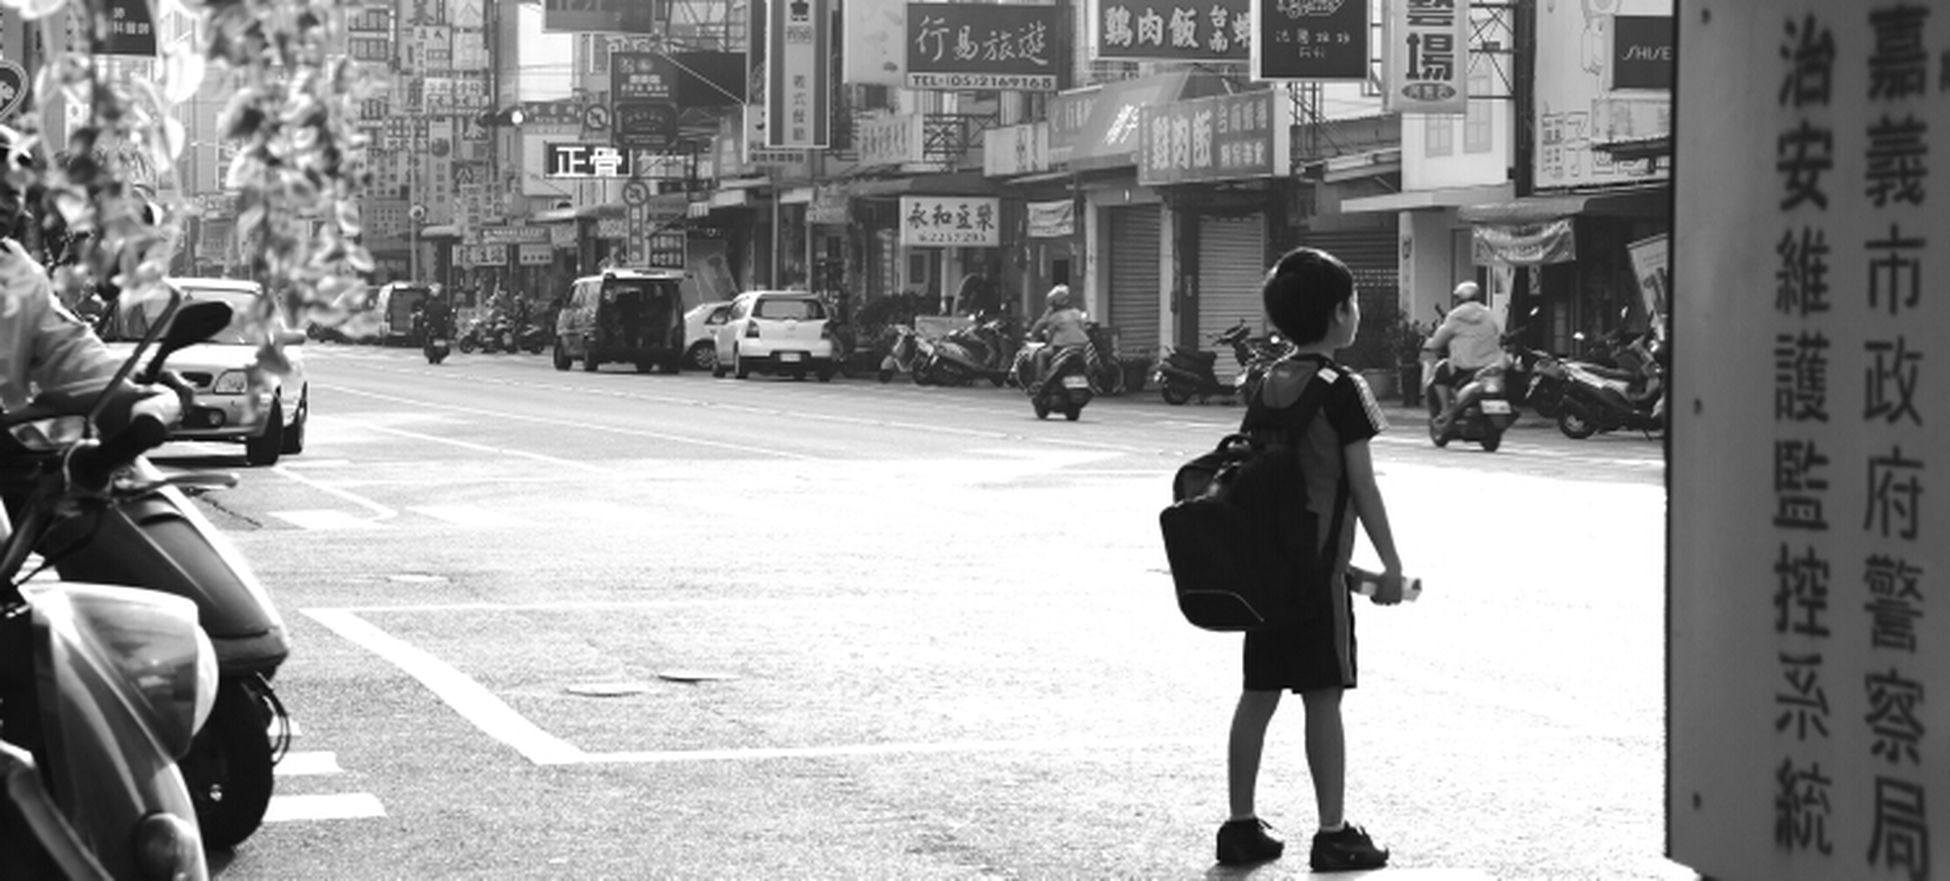 What I Saw Streetphotography Blackandwhite The View And The Spirit Of Taiwan 台灣景 台灣情